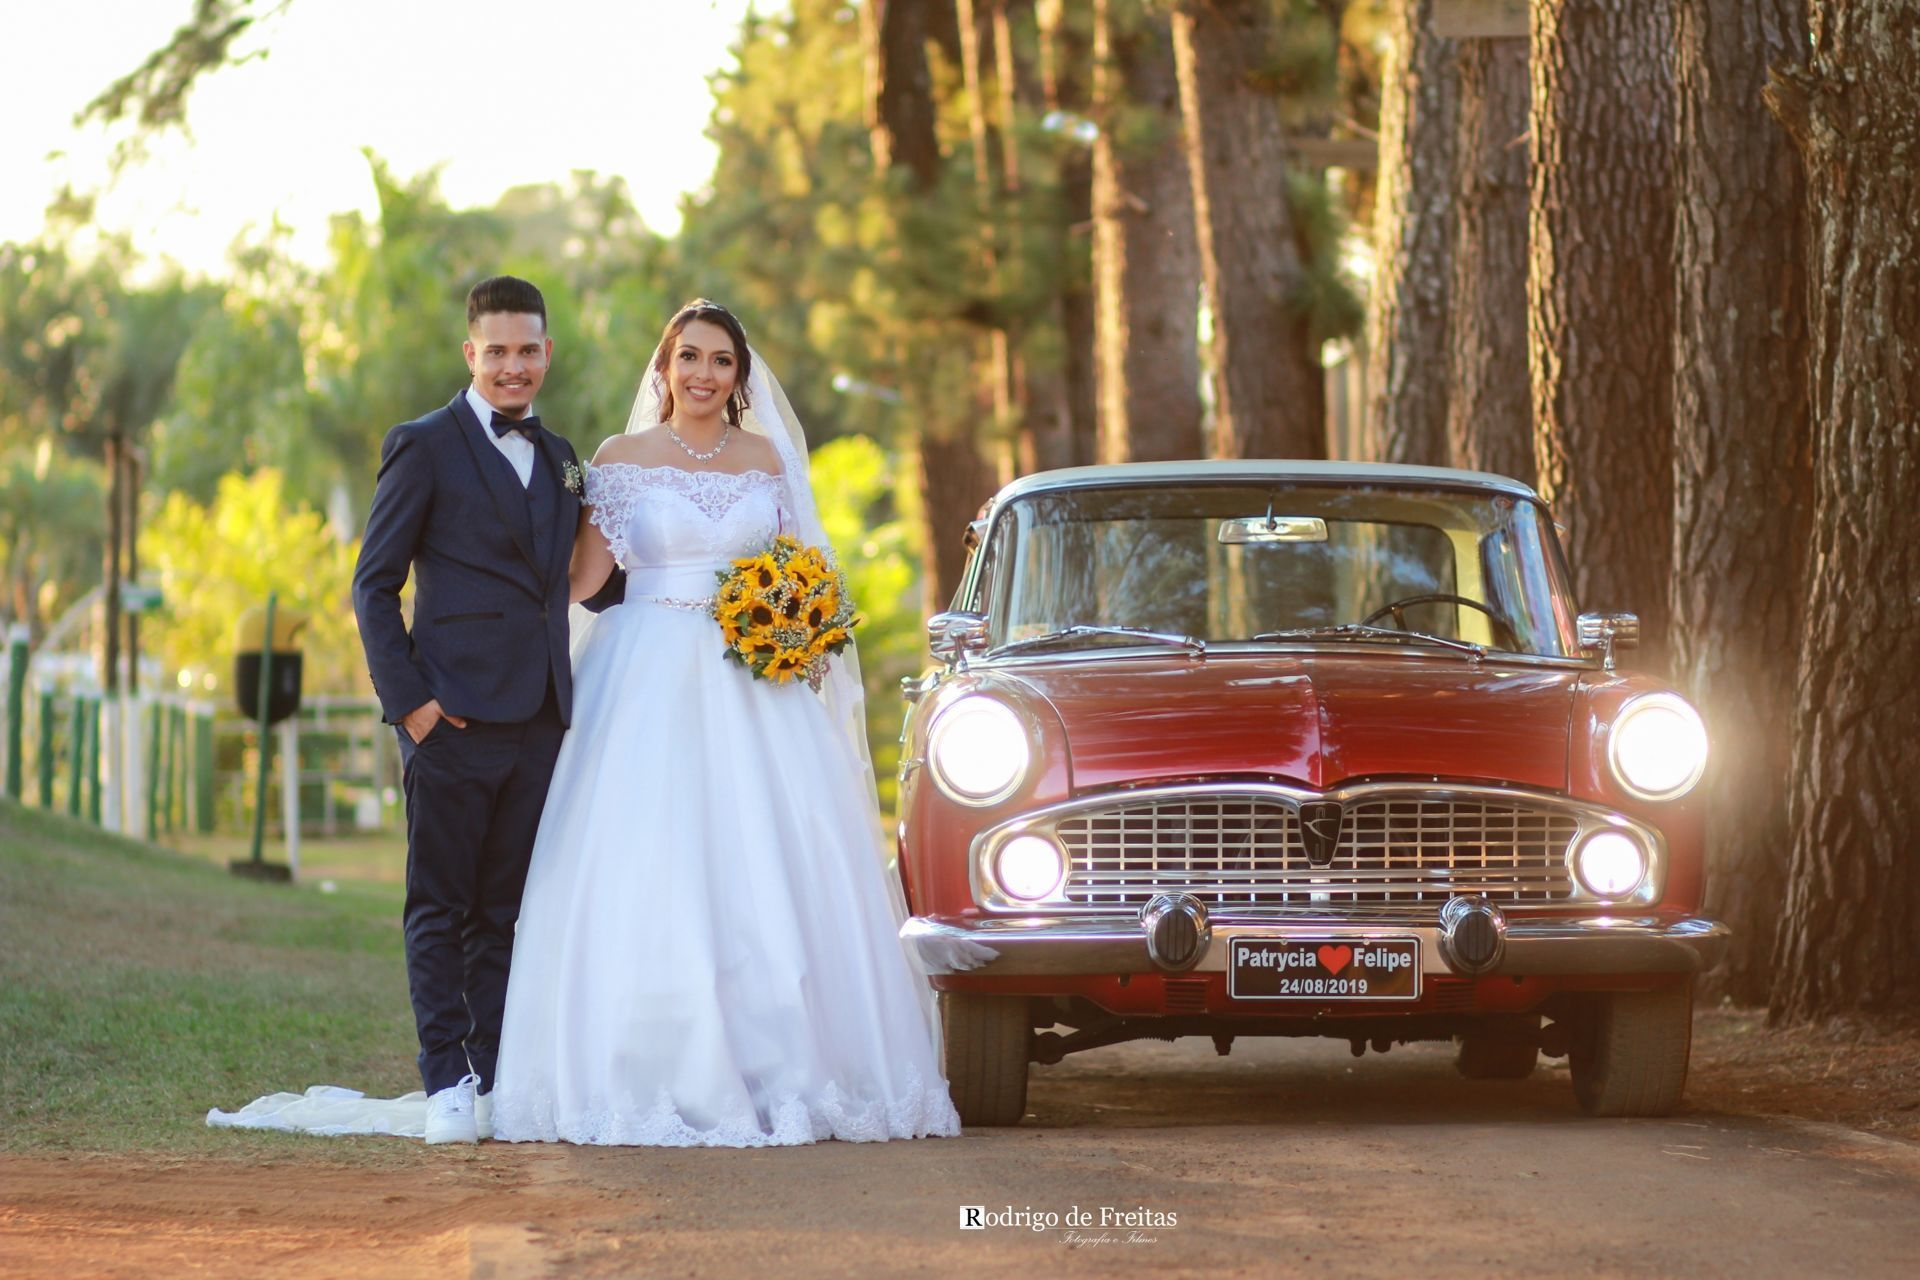 Patrycia e Felipe / WEDDING DAY